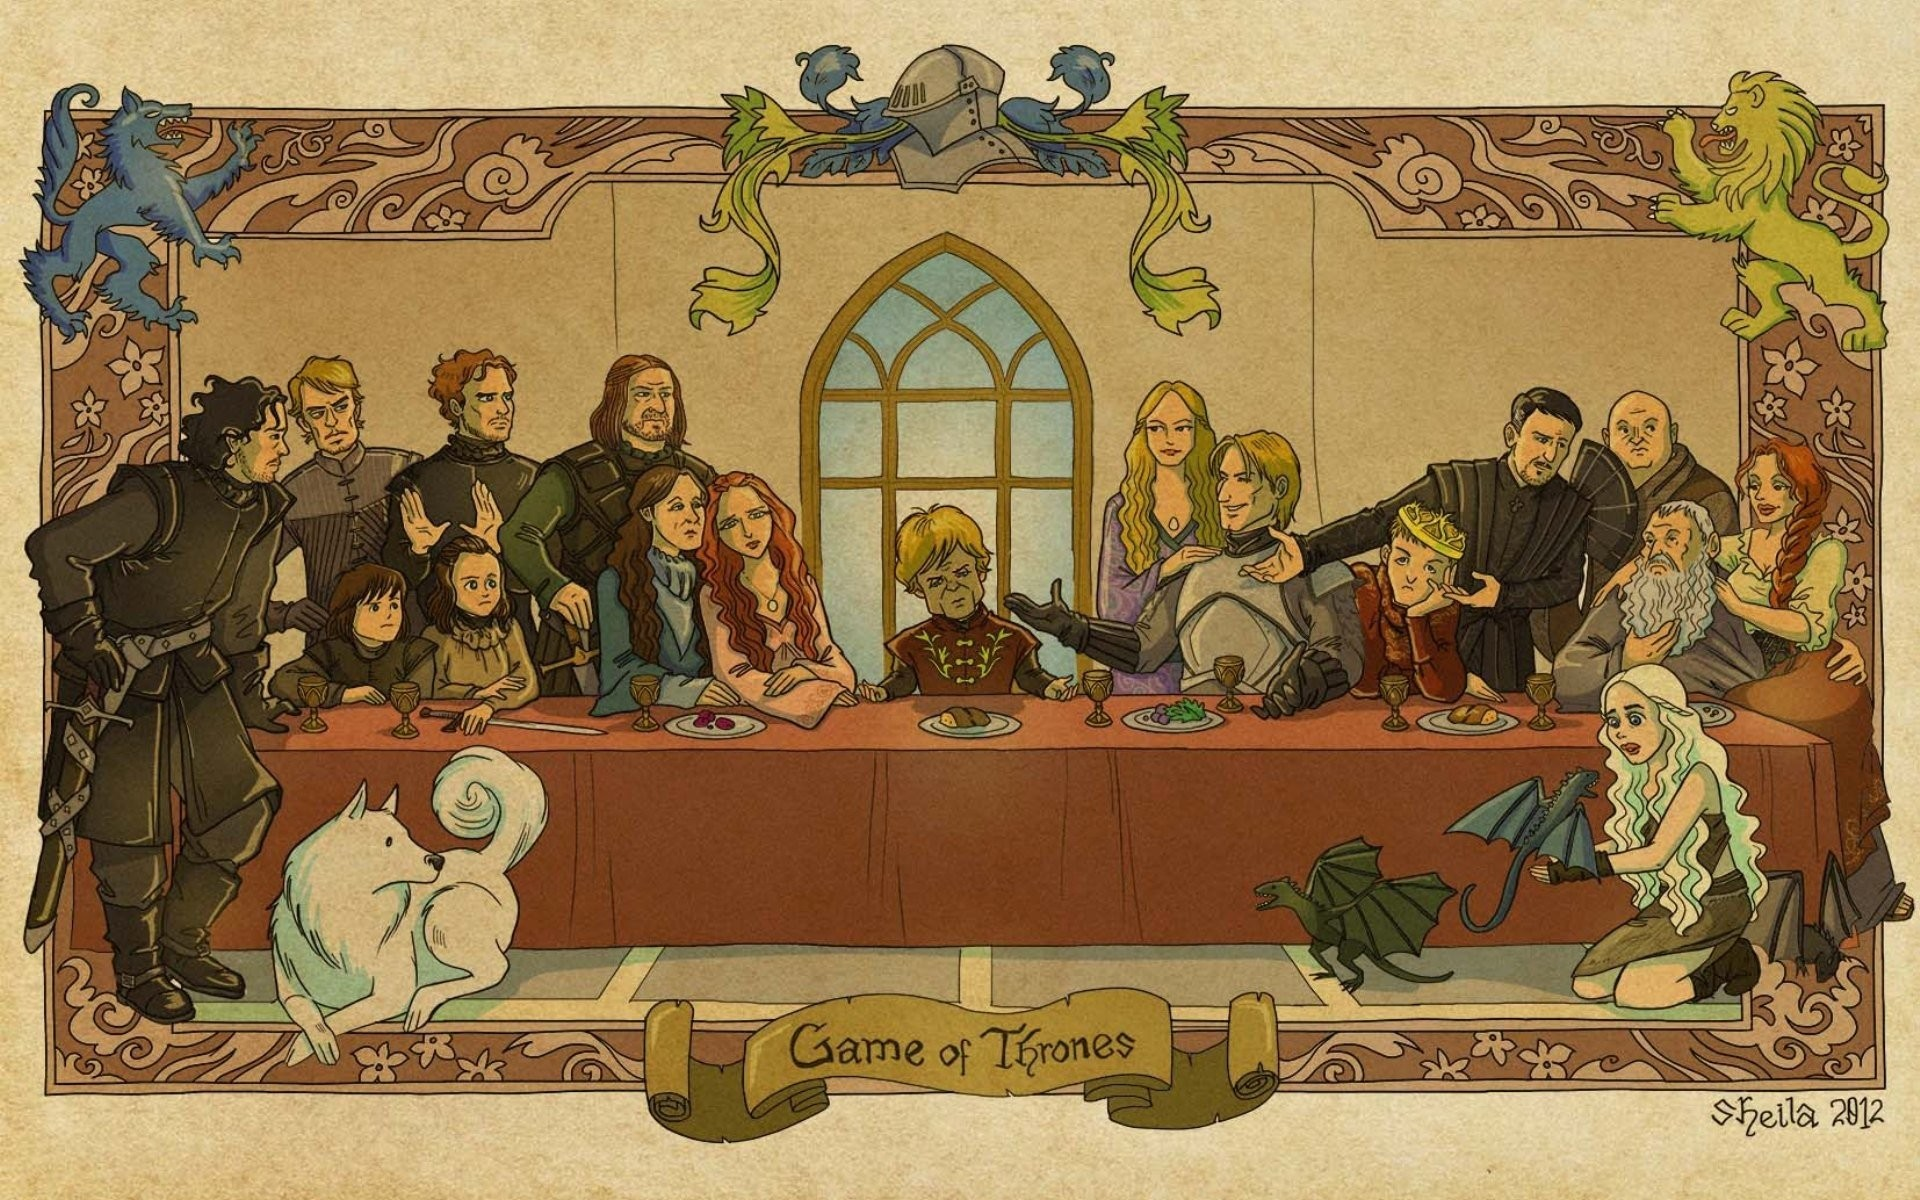 last supper The Last Supper Game of Thrones A Song of Ice and Fire Tyrion  Lannister